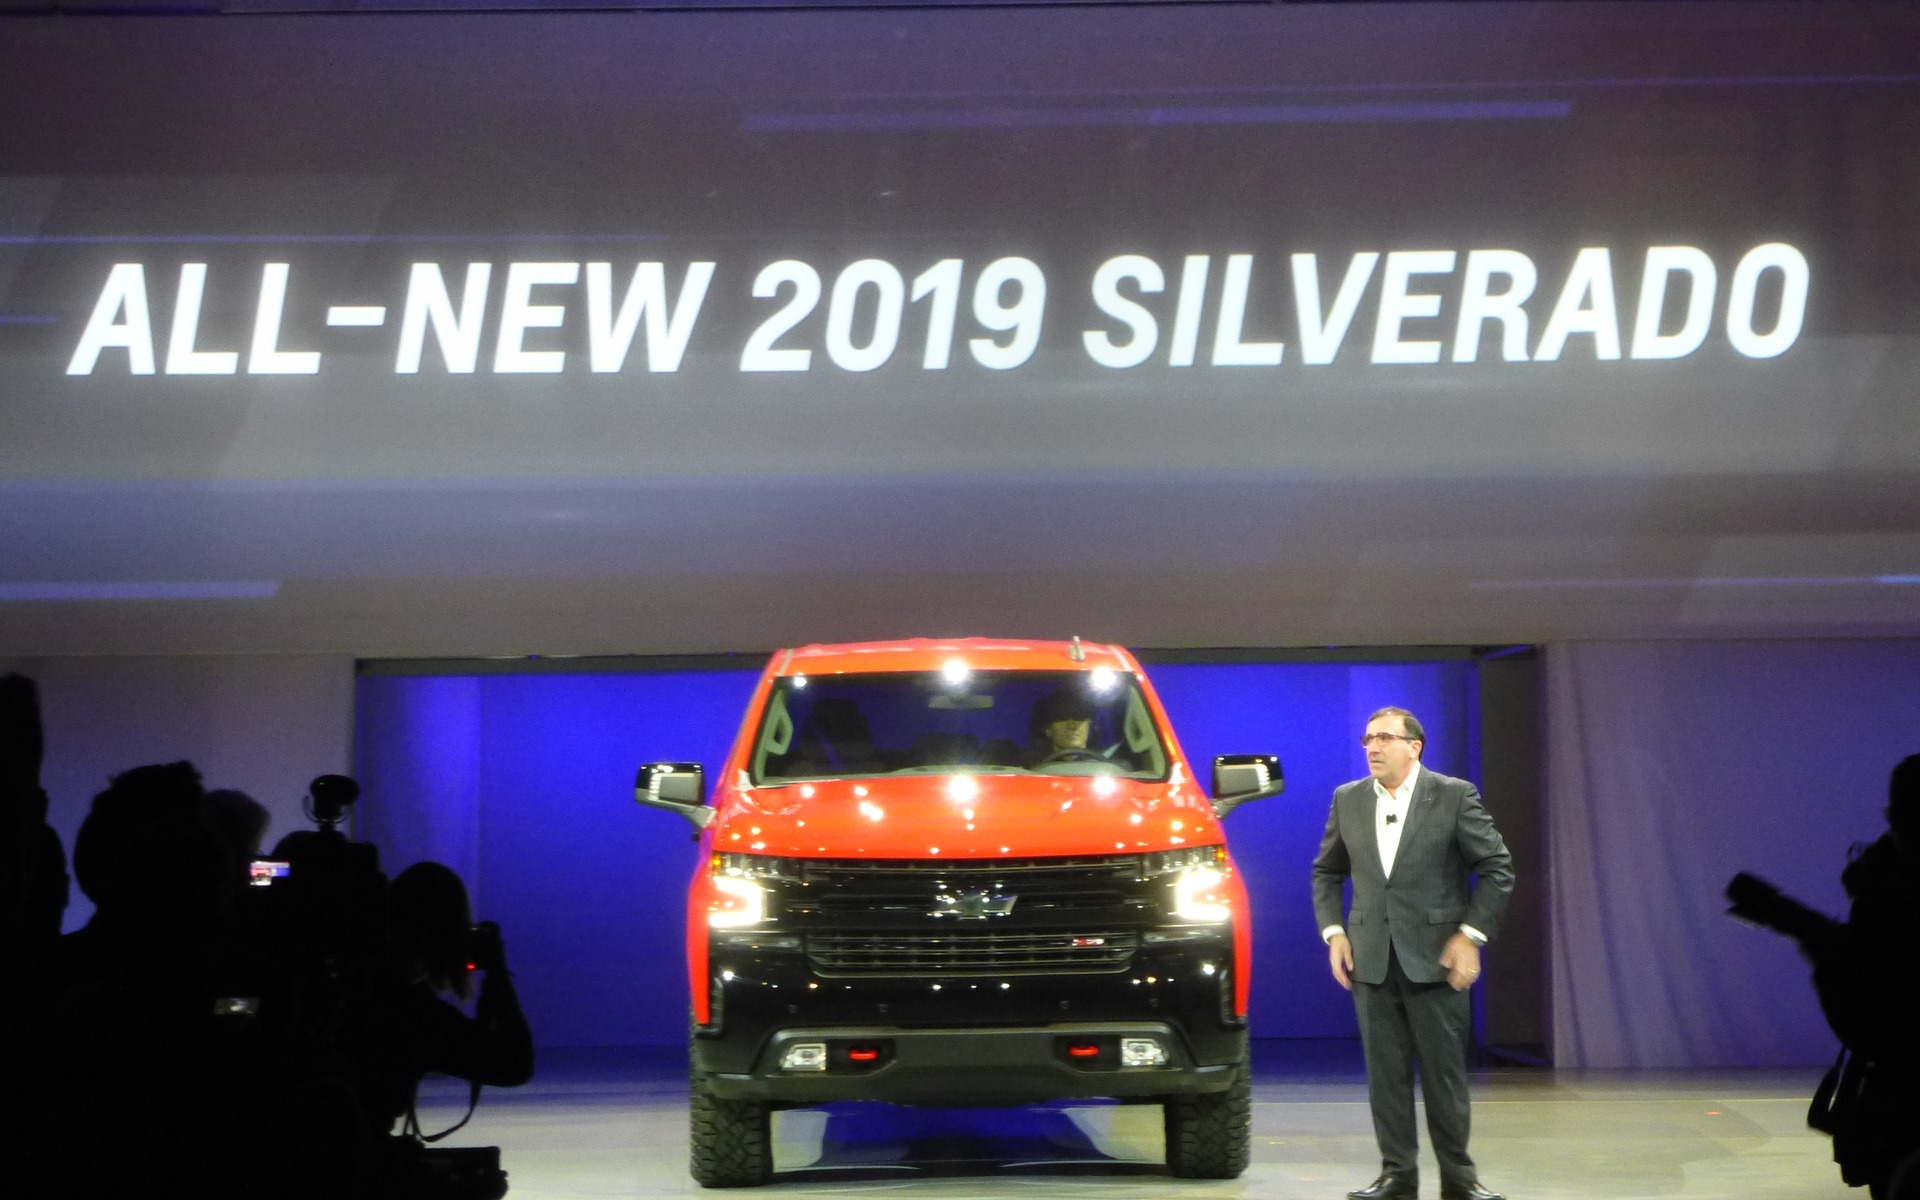 100 Year Anniversary Silverado >> 2019 Chevrolet Silverado: Should the Competition Be Worried? - The Car Guide